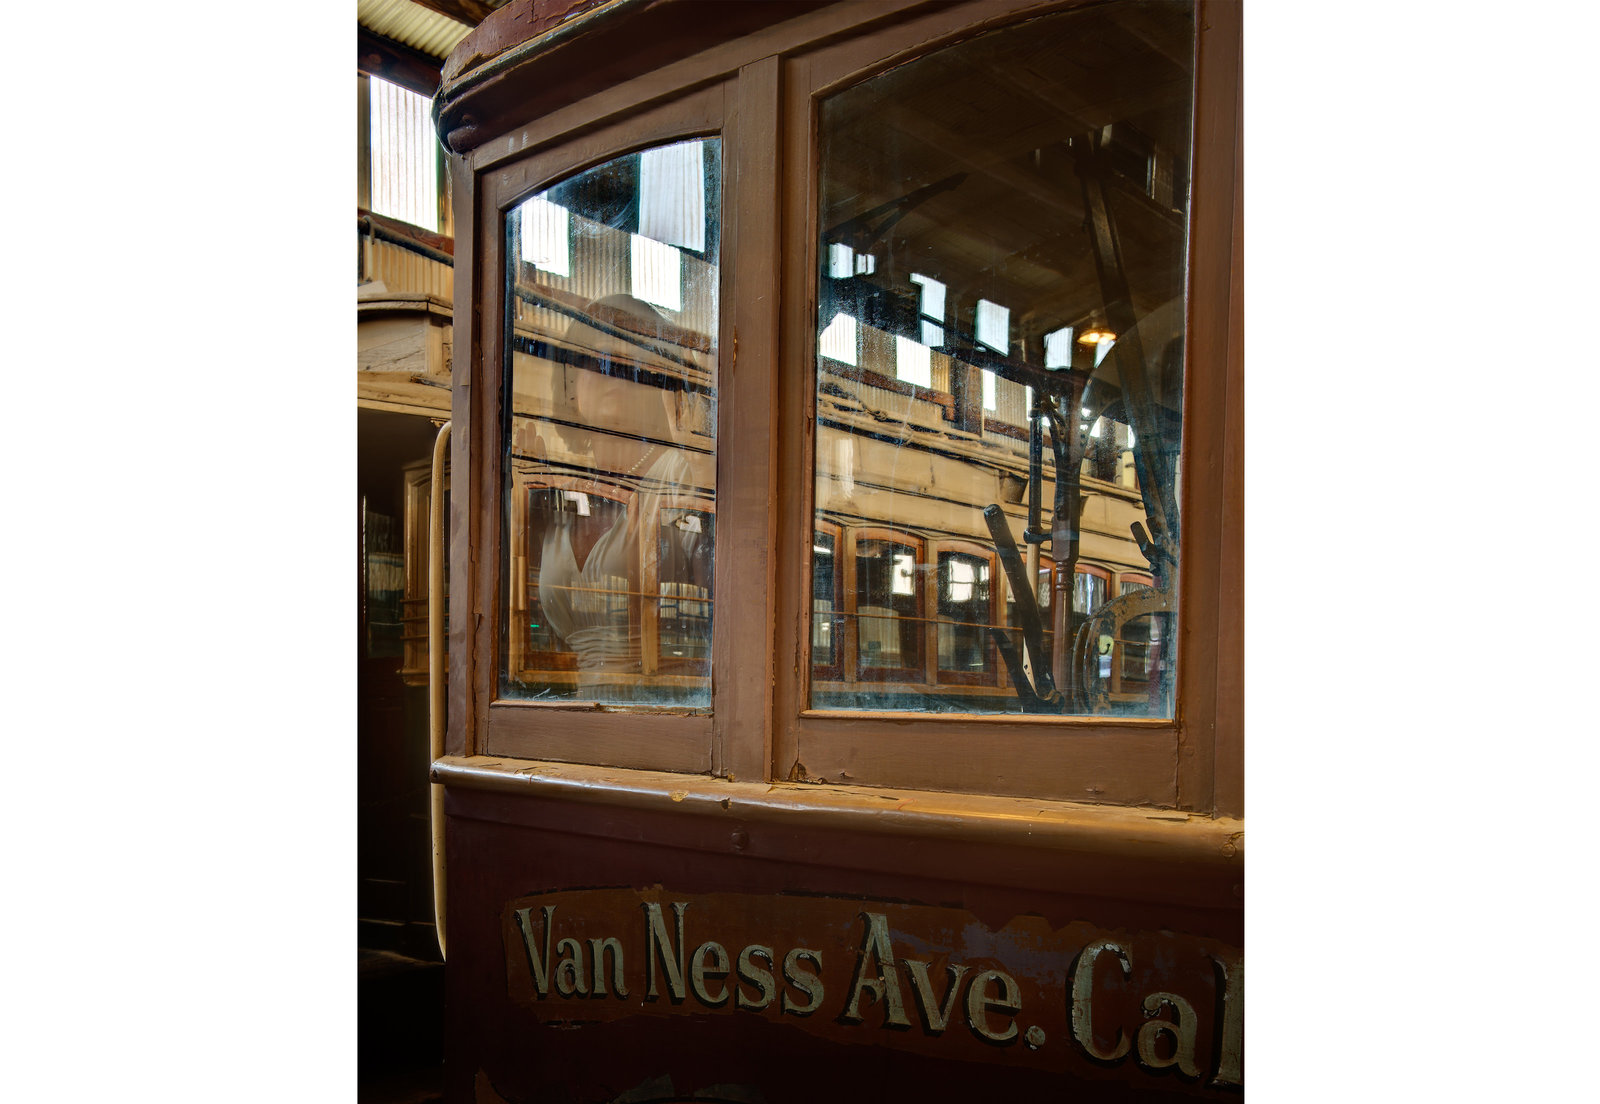 Van Ness Ave Trolley Car at Train and Trolley Museum in Perris California